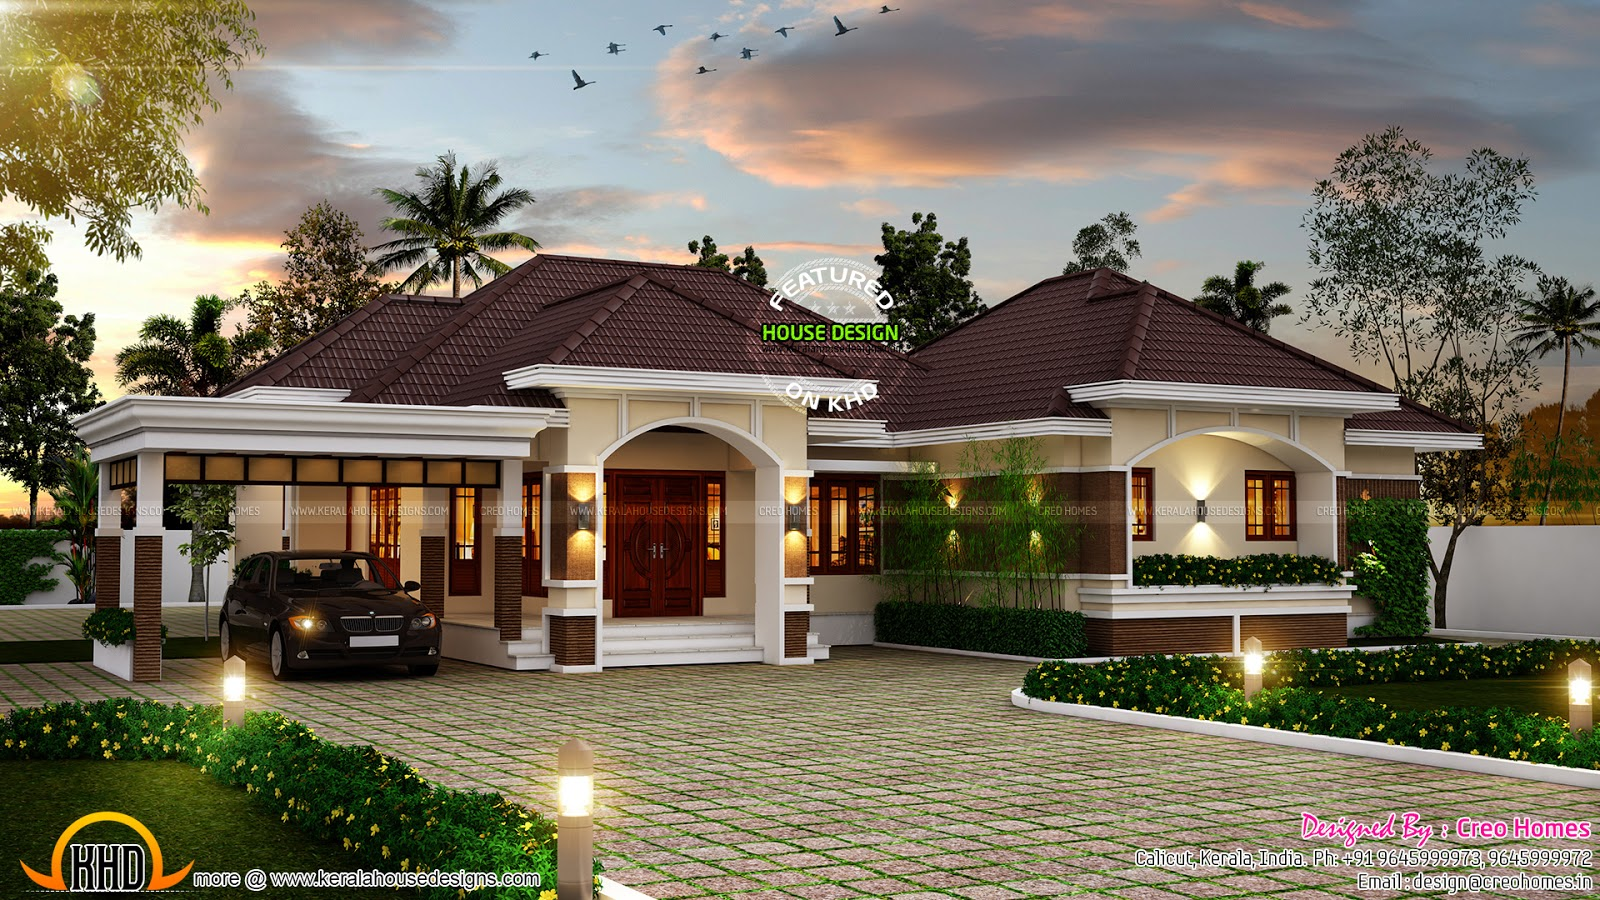 Outstanding bungalow in kerala kerala home design and for Bungalow plans